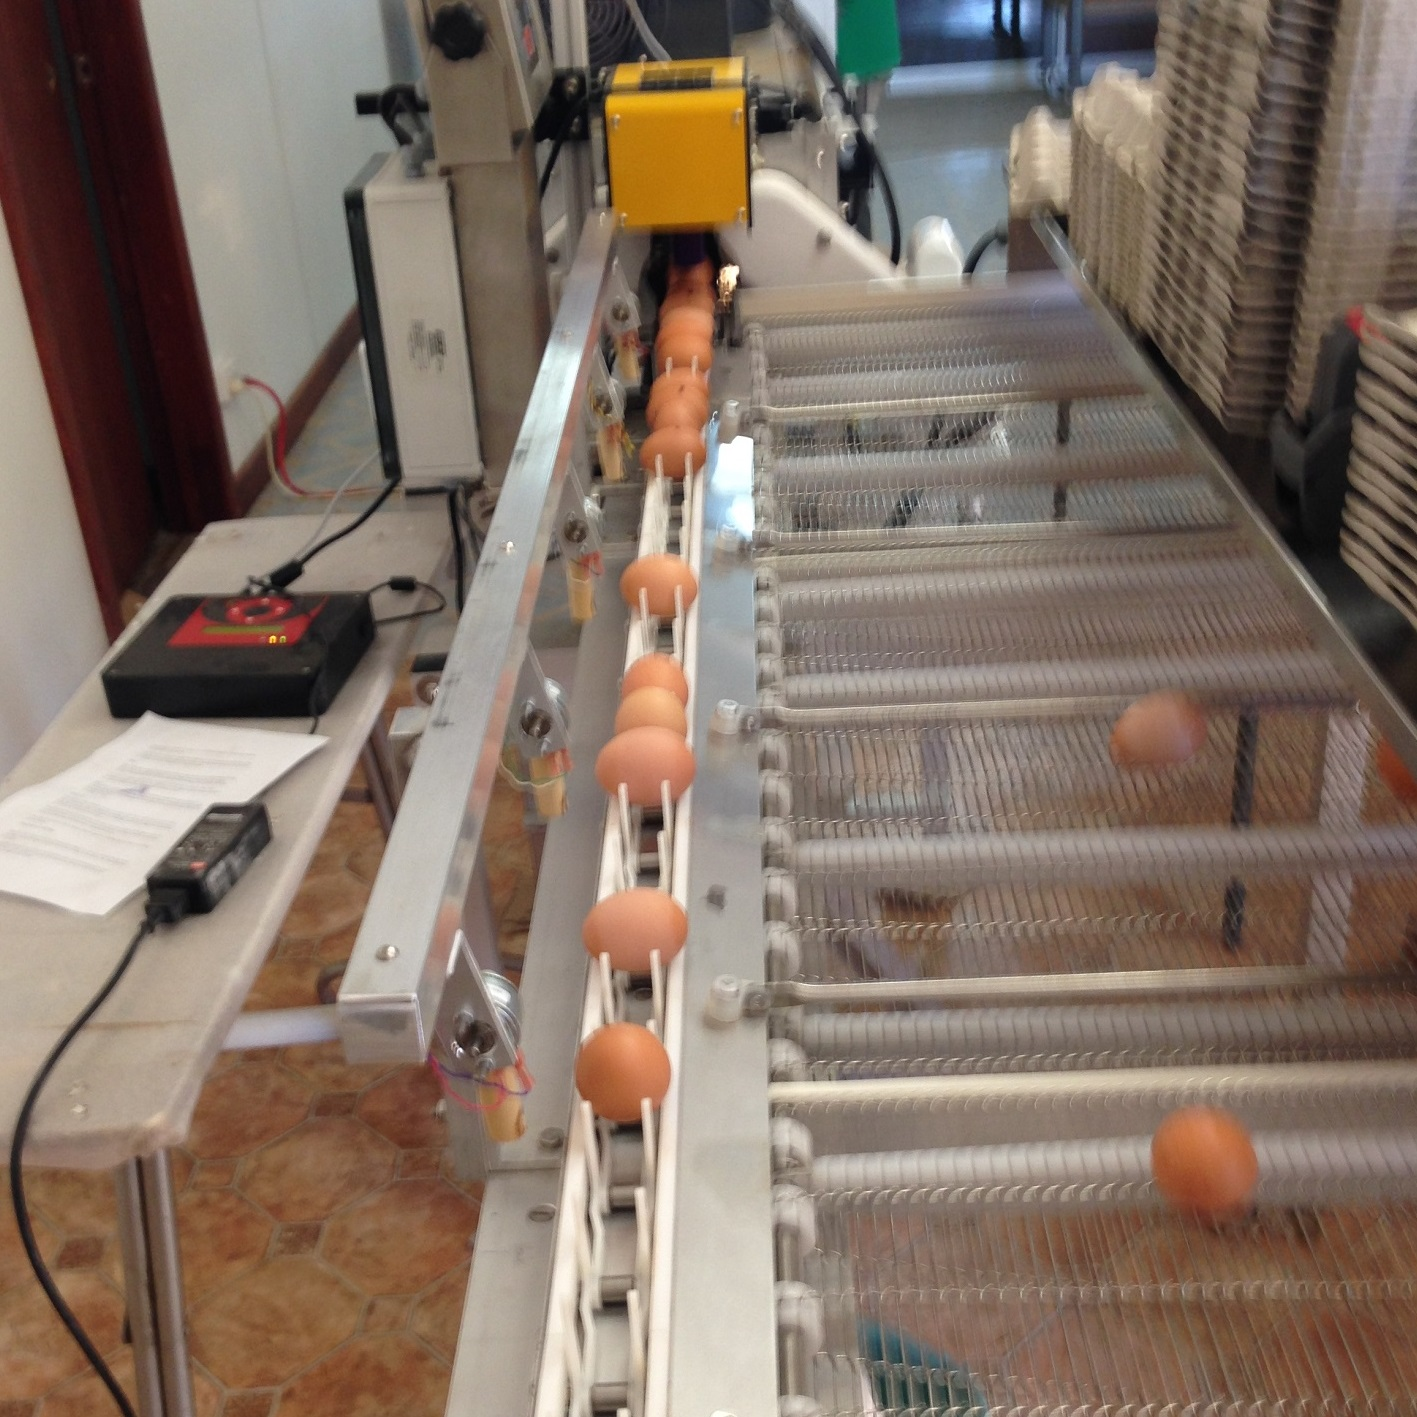 Grading machine weighing and sorting eggs